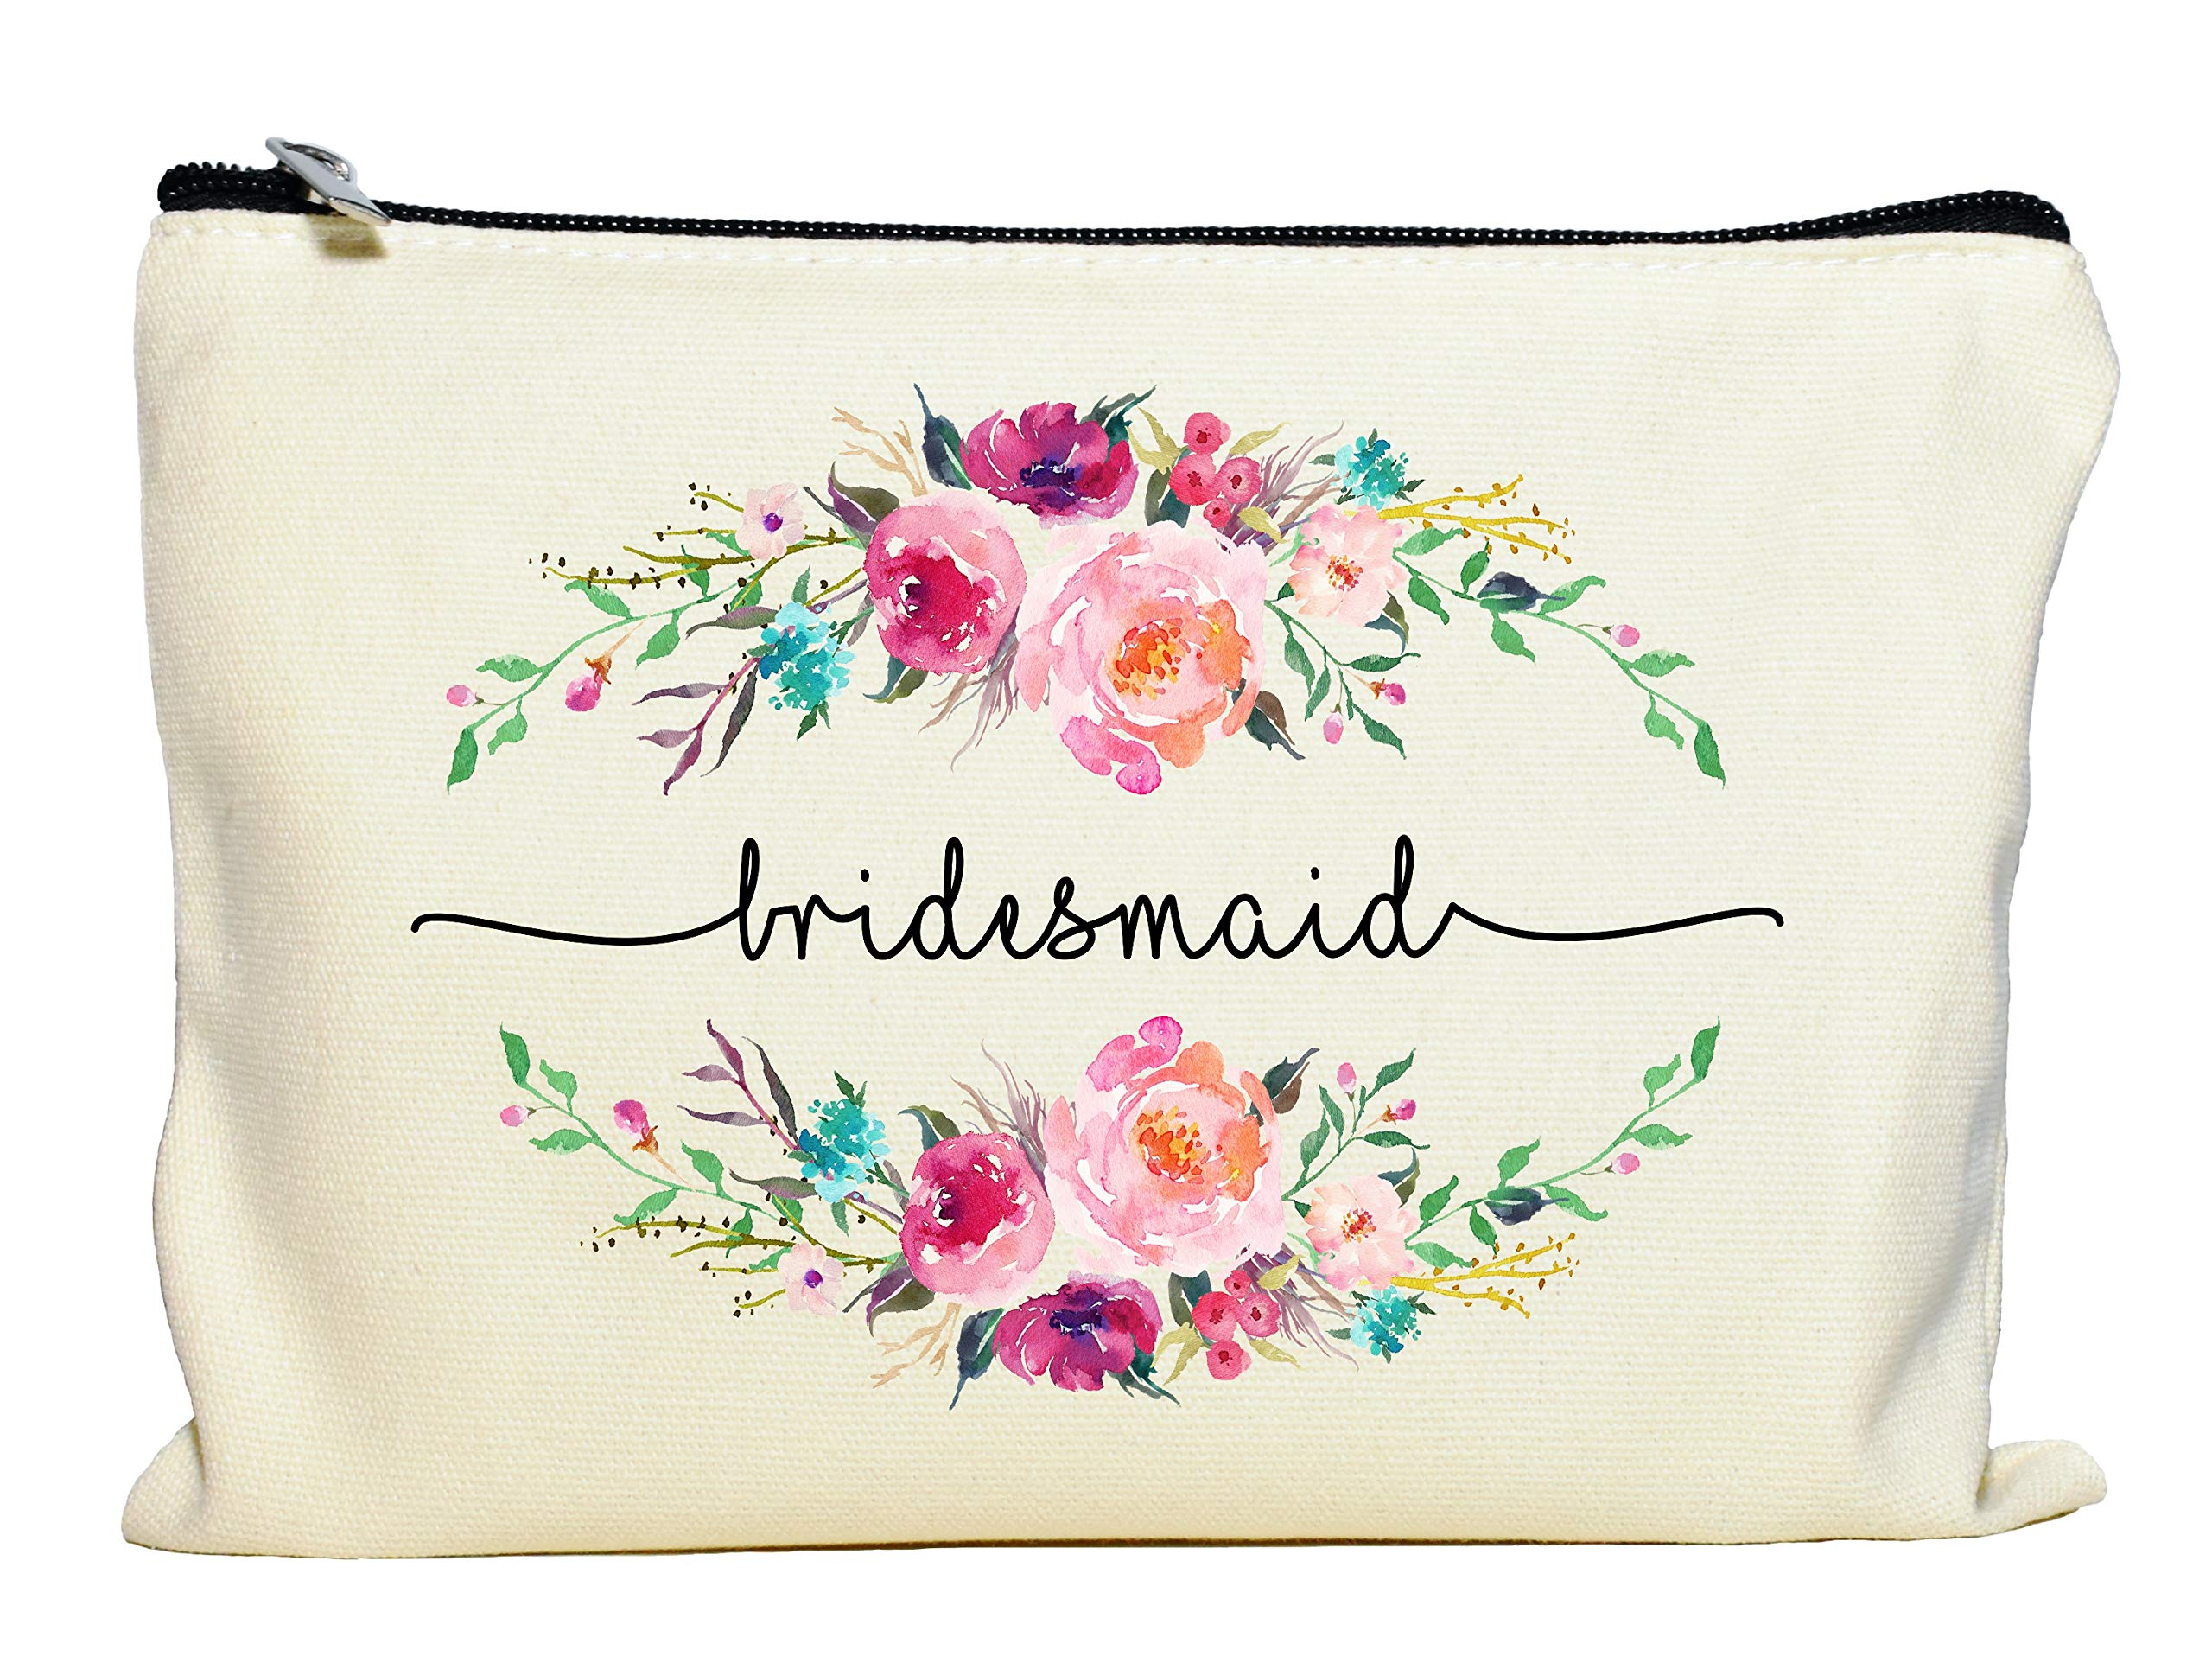 Bridesmaid Makeup Bag, Bridesmaid Gift, Bridal Party Favor, Cosmetic Pouch, Wedding Party